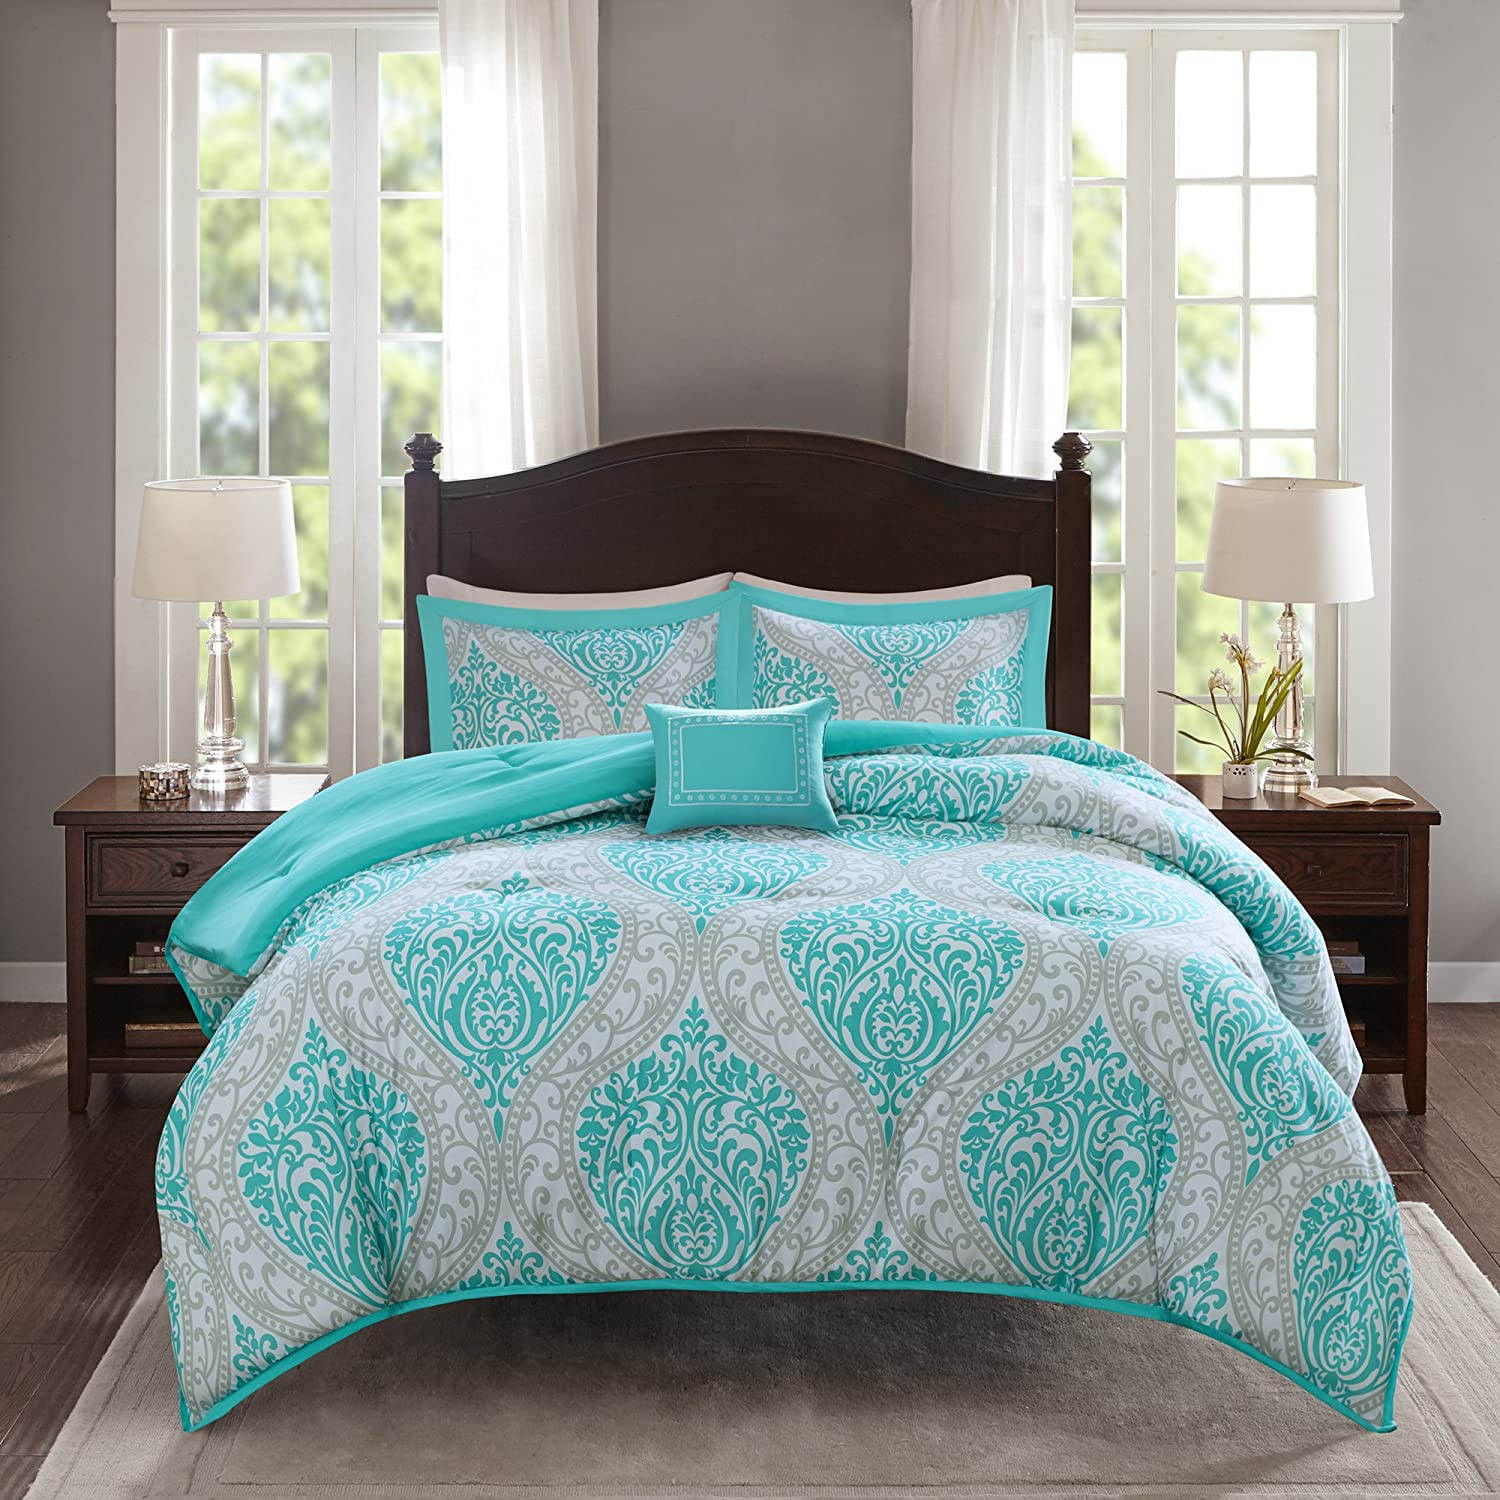 "Comfort Spaces Comforter Set Ultra Soft Printed Pattern Hypoallergenic Bedding, Full/Queen(90""x90""), Coco Teal Damask"